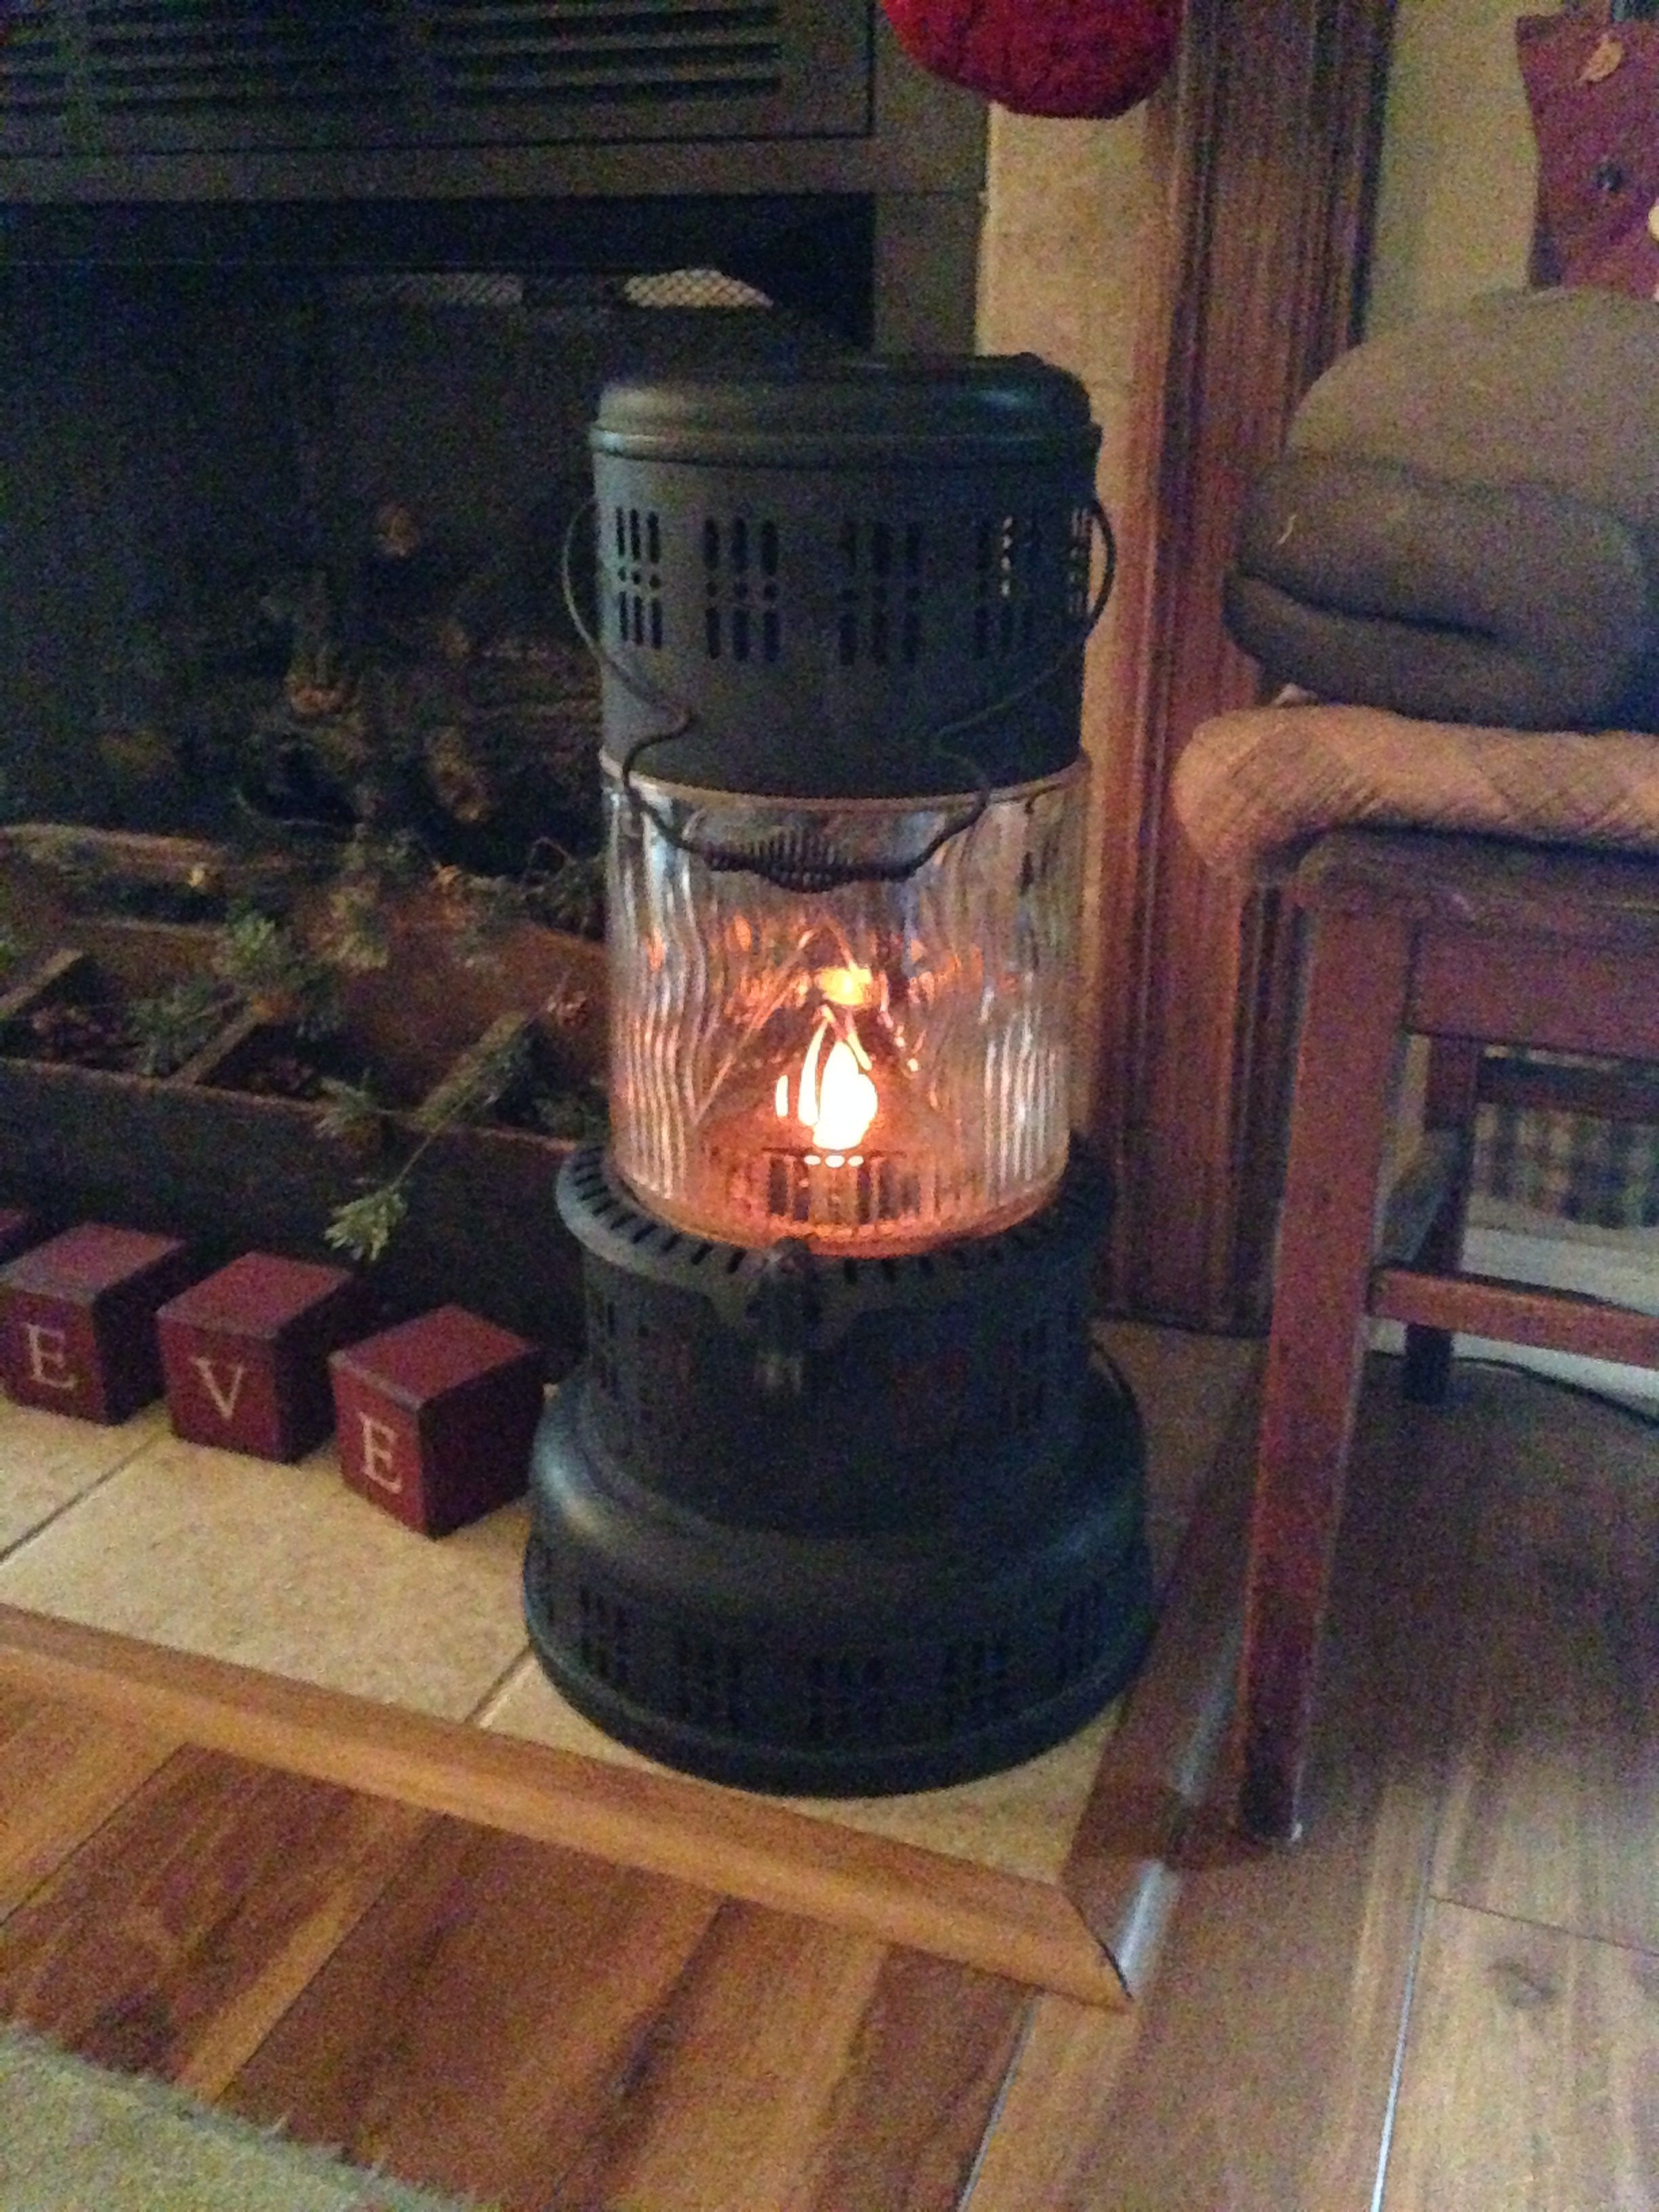 Primitive Old Kerosene Heater Turned Into Flickering Lamp I Love This Bought It In Nc Many Years Ago Diy Heater Kerosene Heater Antique Stove